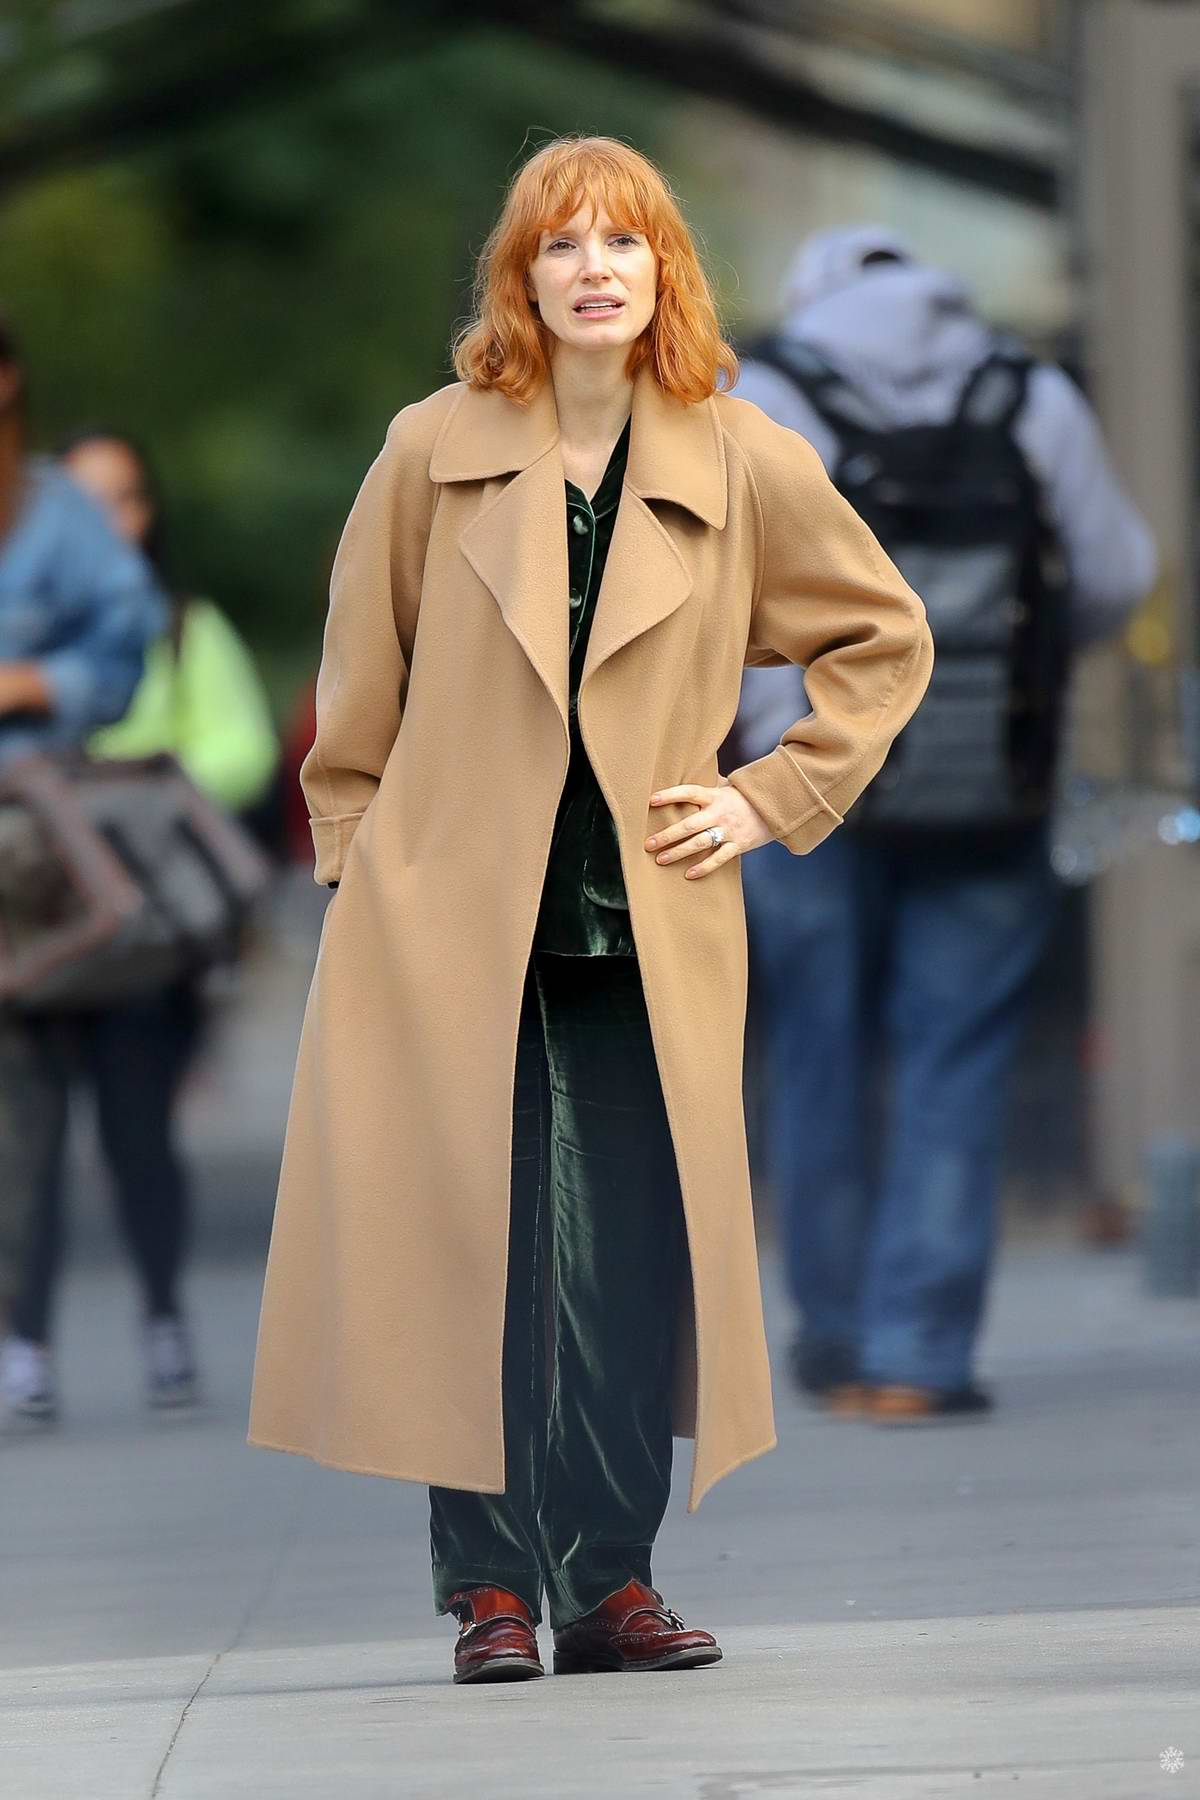 Jessica Chastain goes make-up free while bundling up during solo outing in New York City